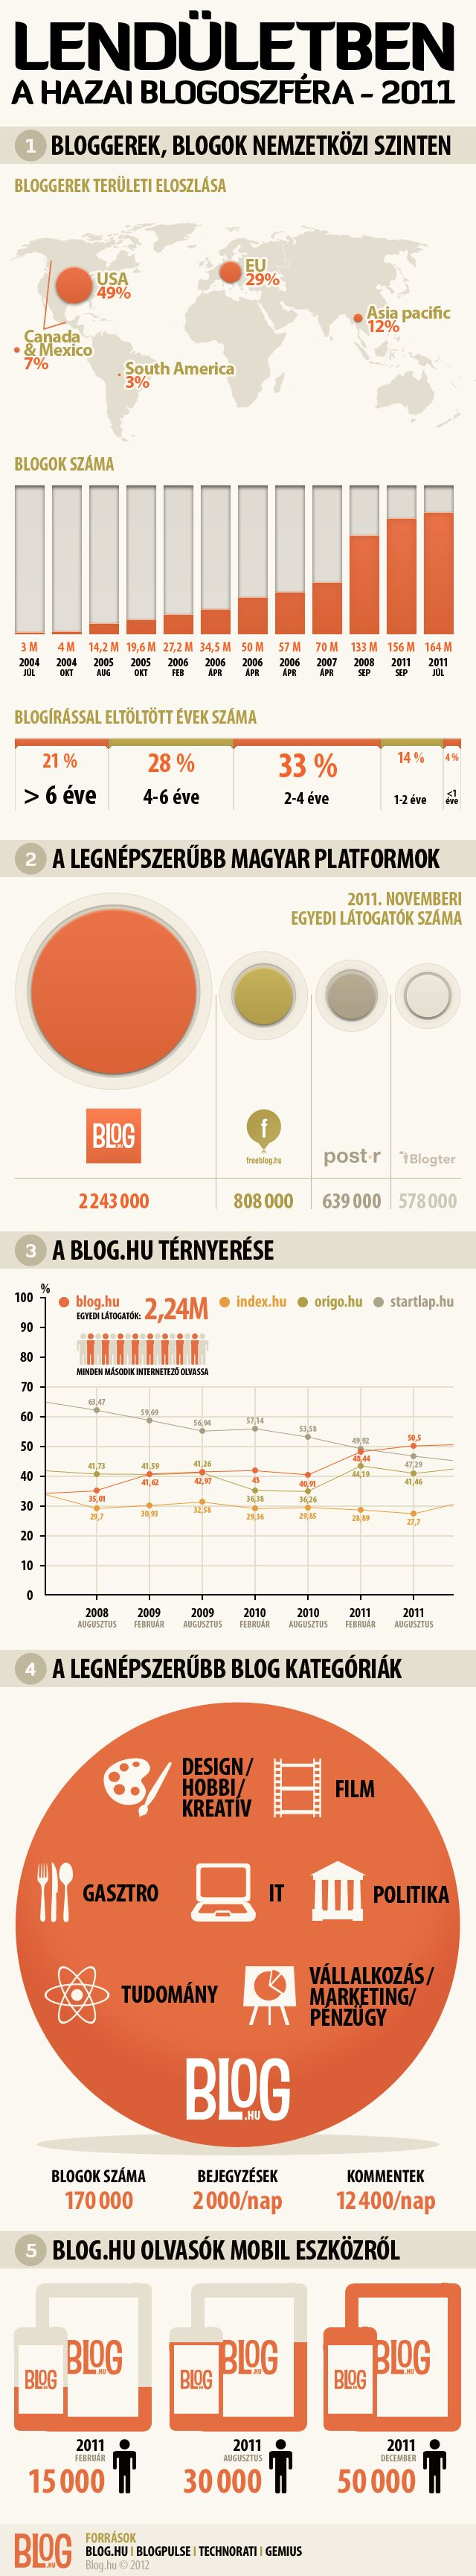 Blogs in Hungary